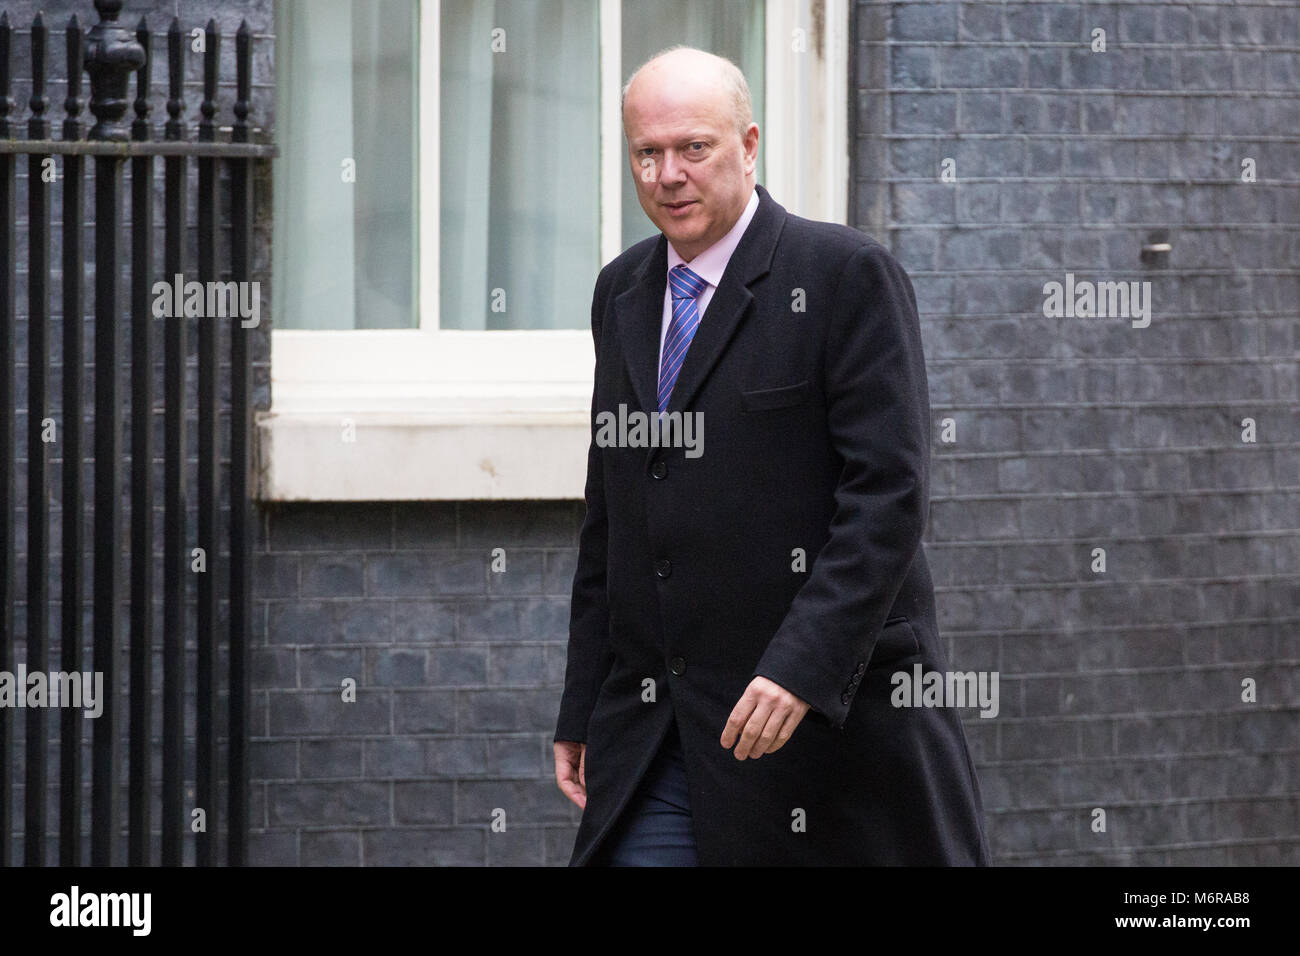 London, UK. 6th March, 2018. Chris Grayling MP, Secretary of State for Transport, arrives at 10 Downing Street for - Stock Image